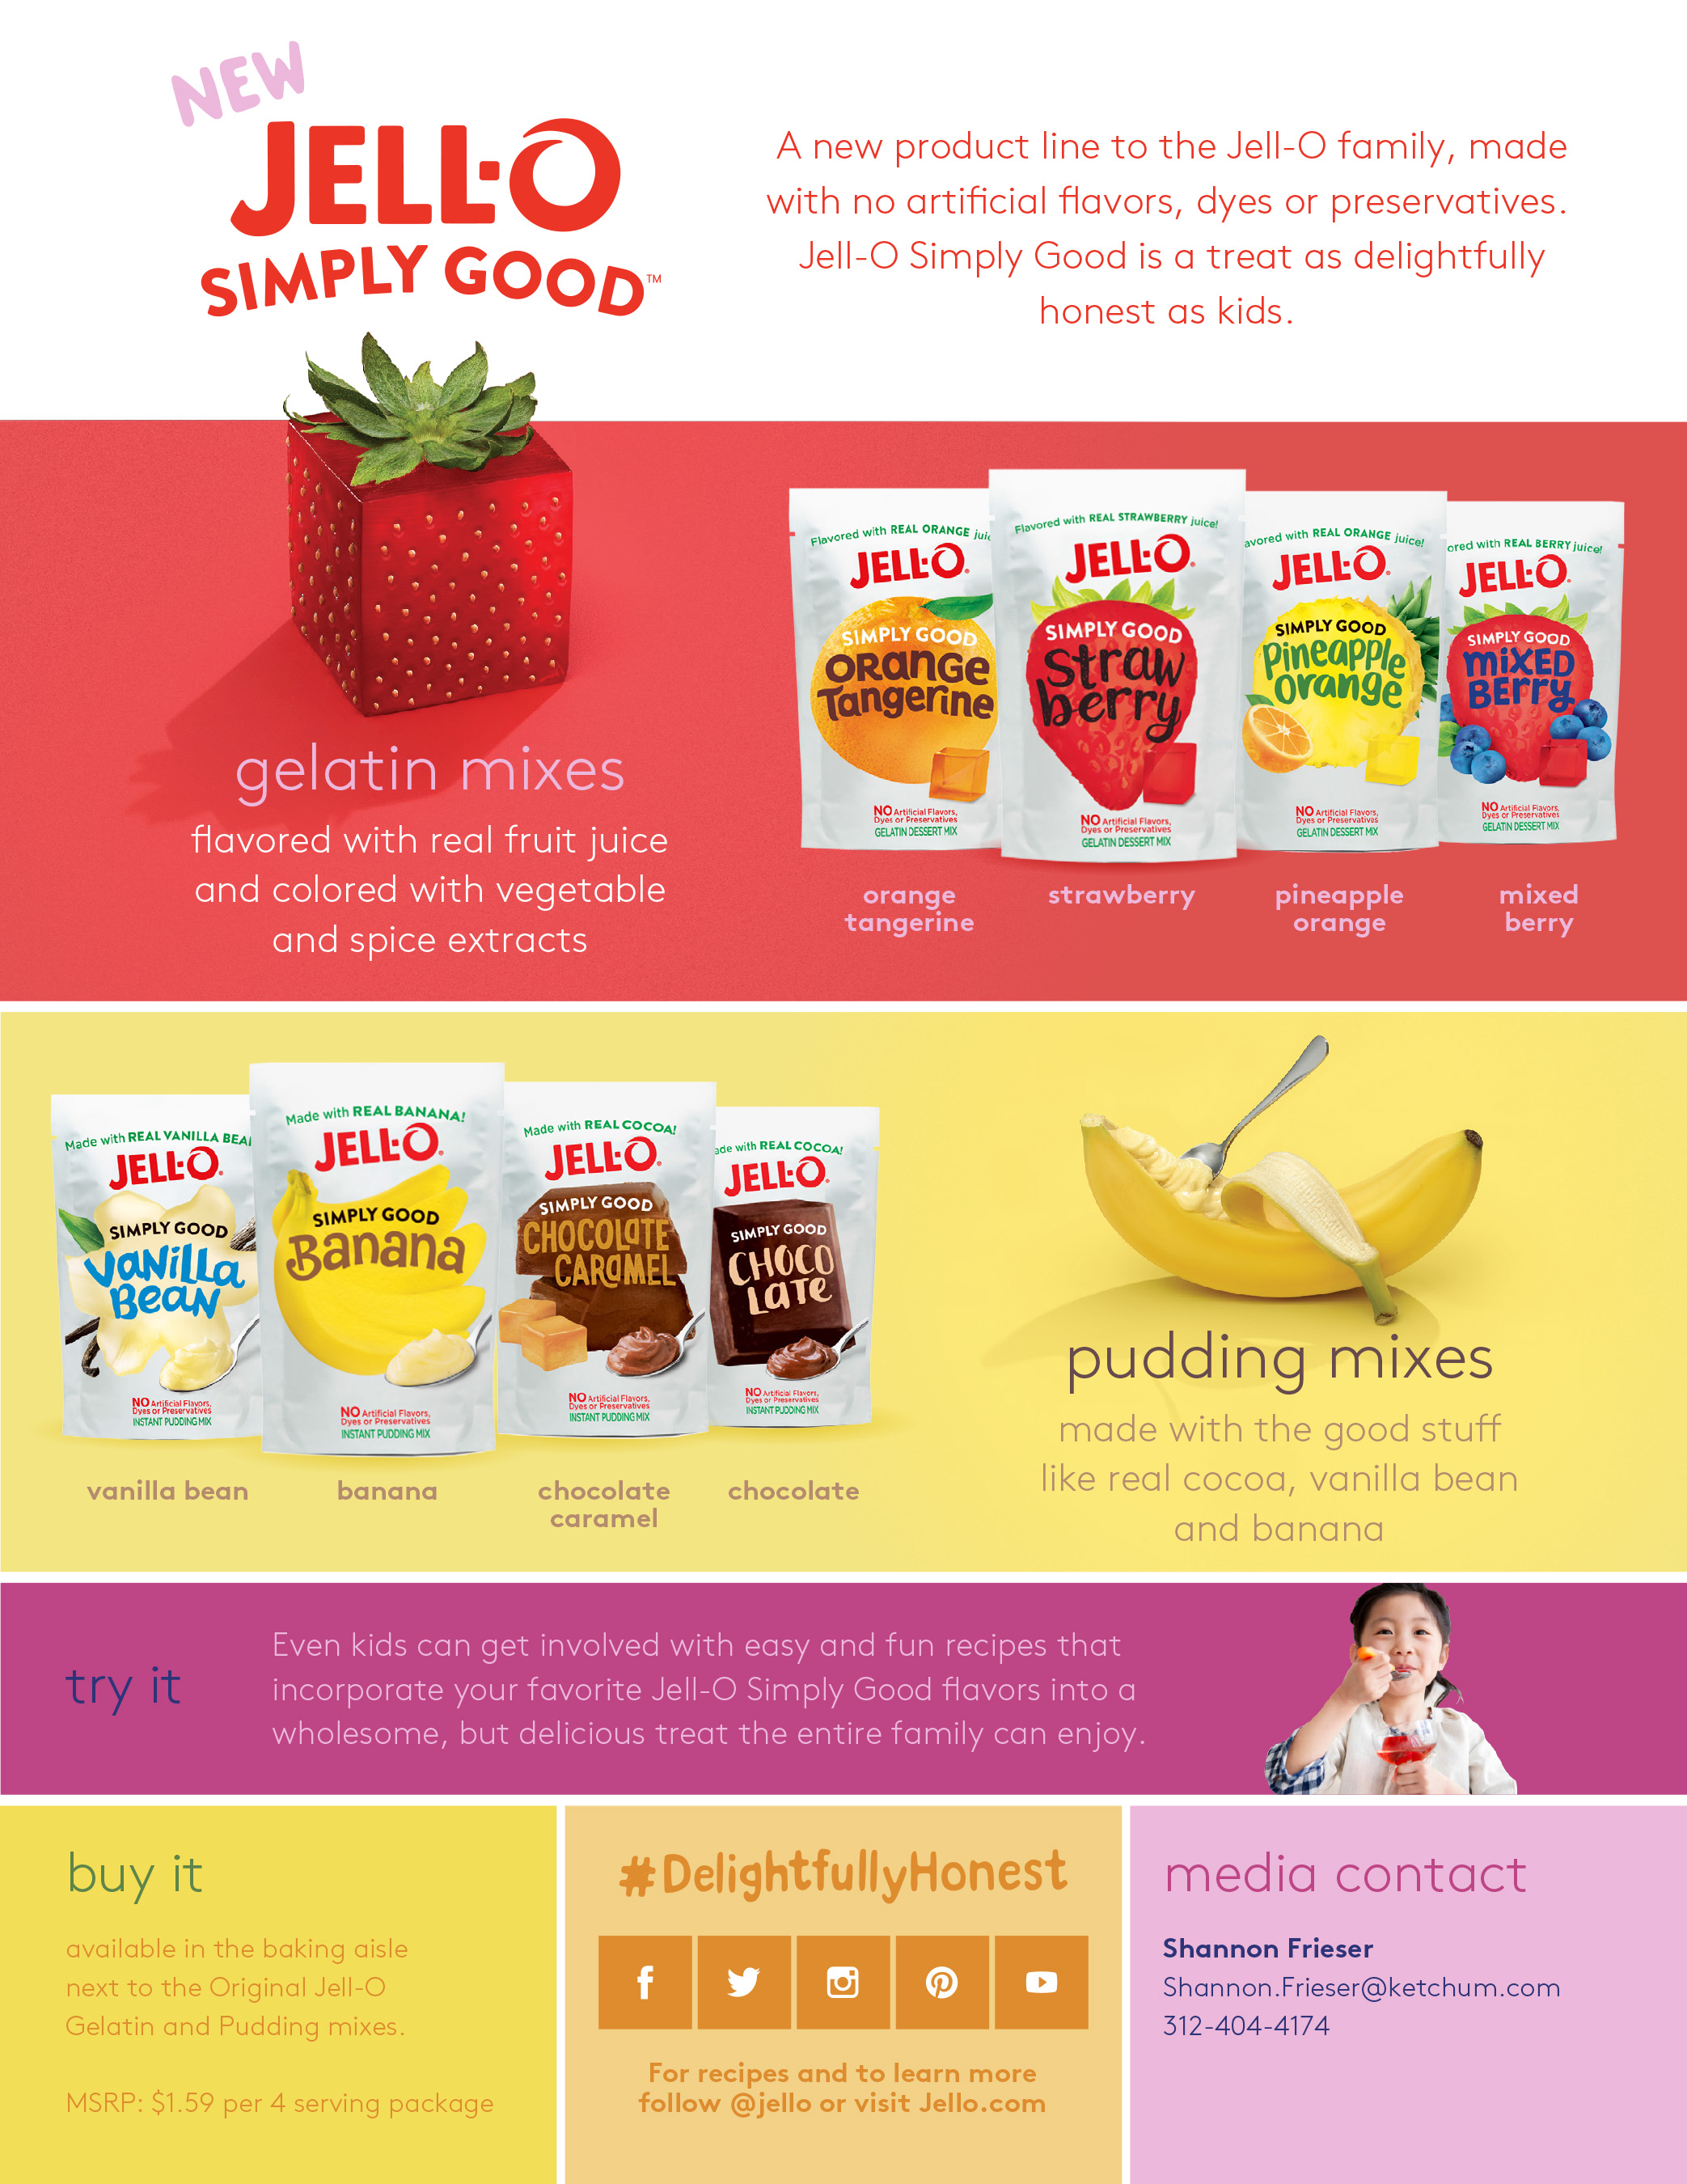 Iconic Jell-O Brand Breaks The Mold With Launch Of New Jell-O Simply Good Product Line